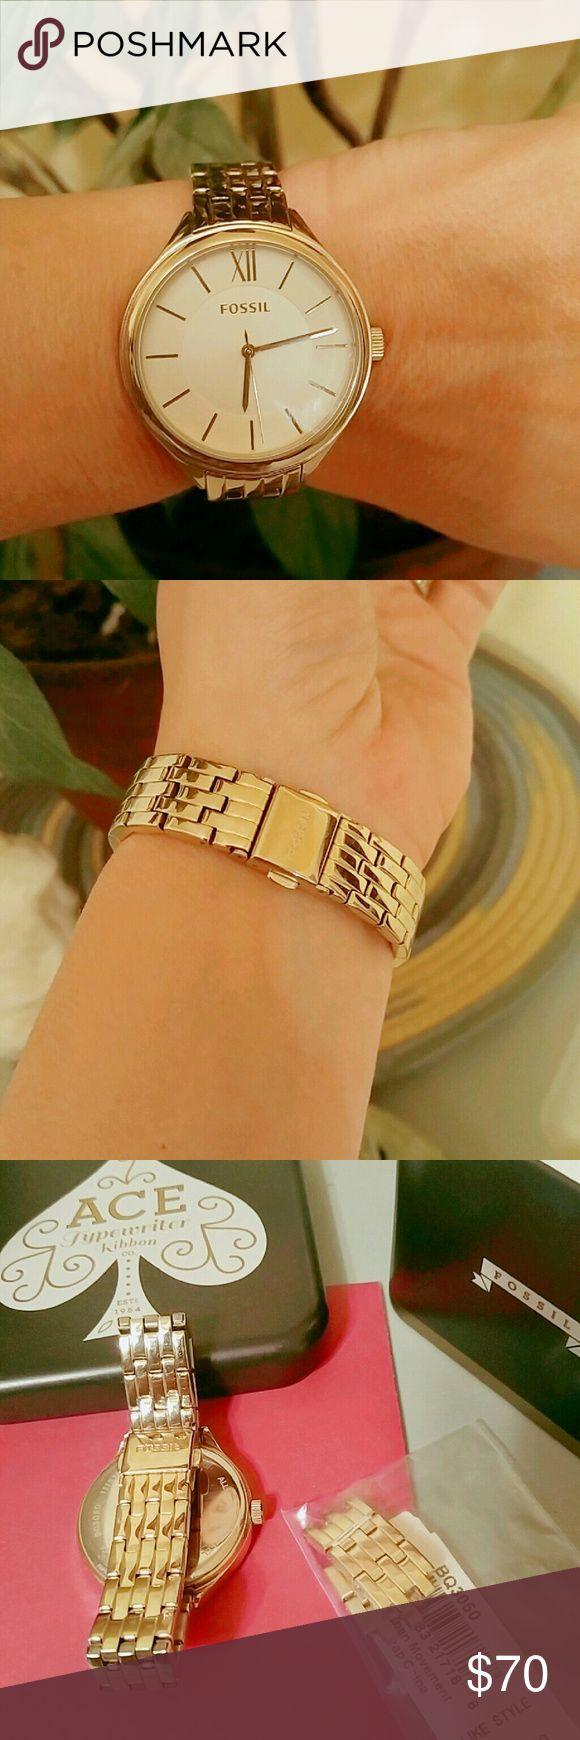 Gold Fossil Watch Gorgeous boyfriend style gold watch.  Original box and extra links included.  Excellent condition.  Bought directly from Fossil and only worn for a few weeks. Price firm unless bundled. 15% off 2+ items. ✨✨ Fossil Accessories Watches